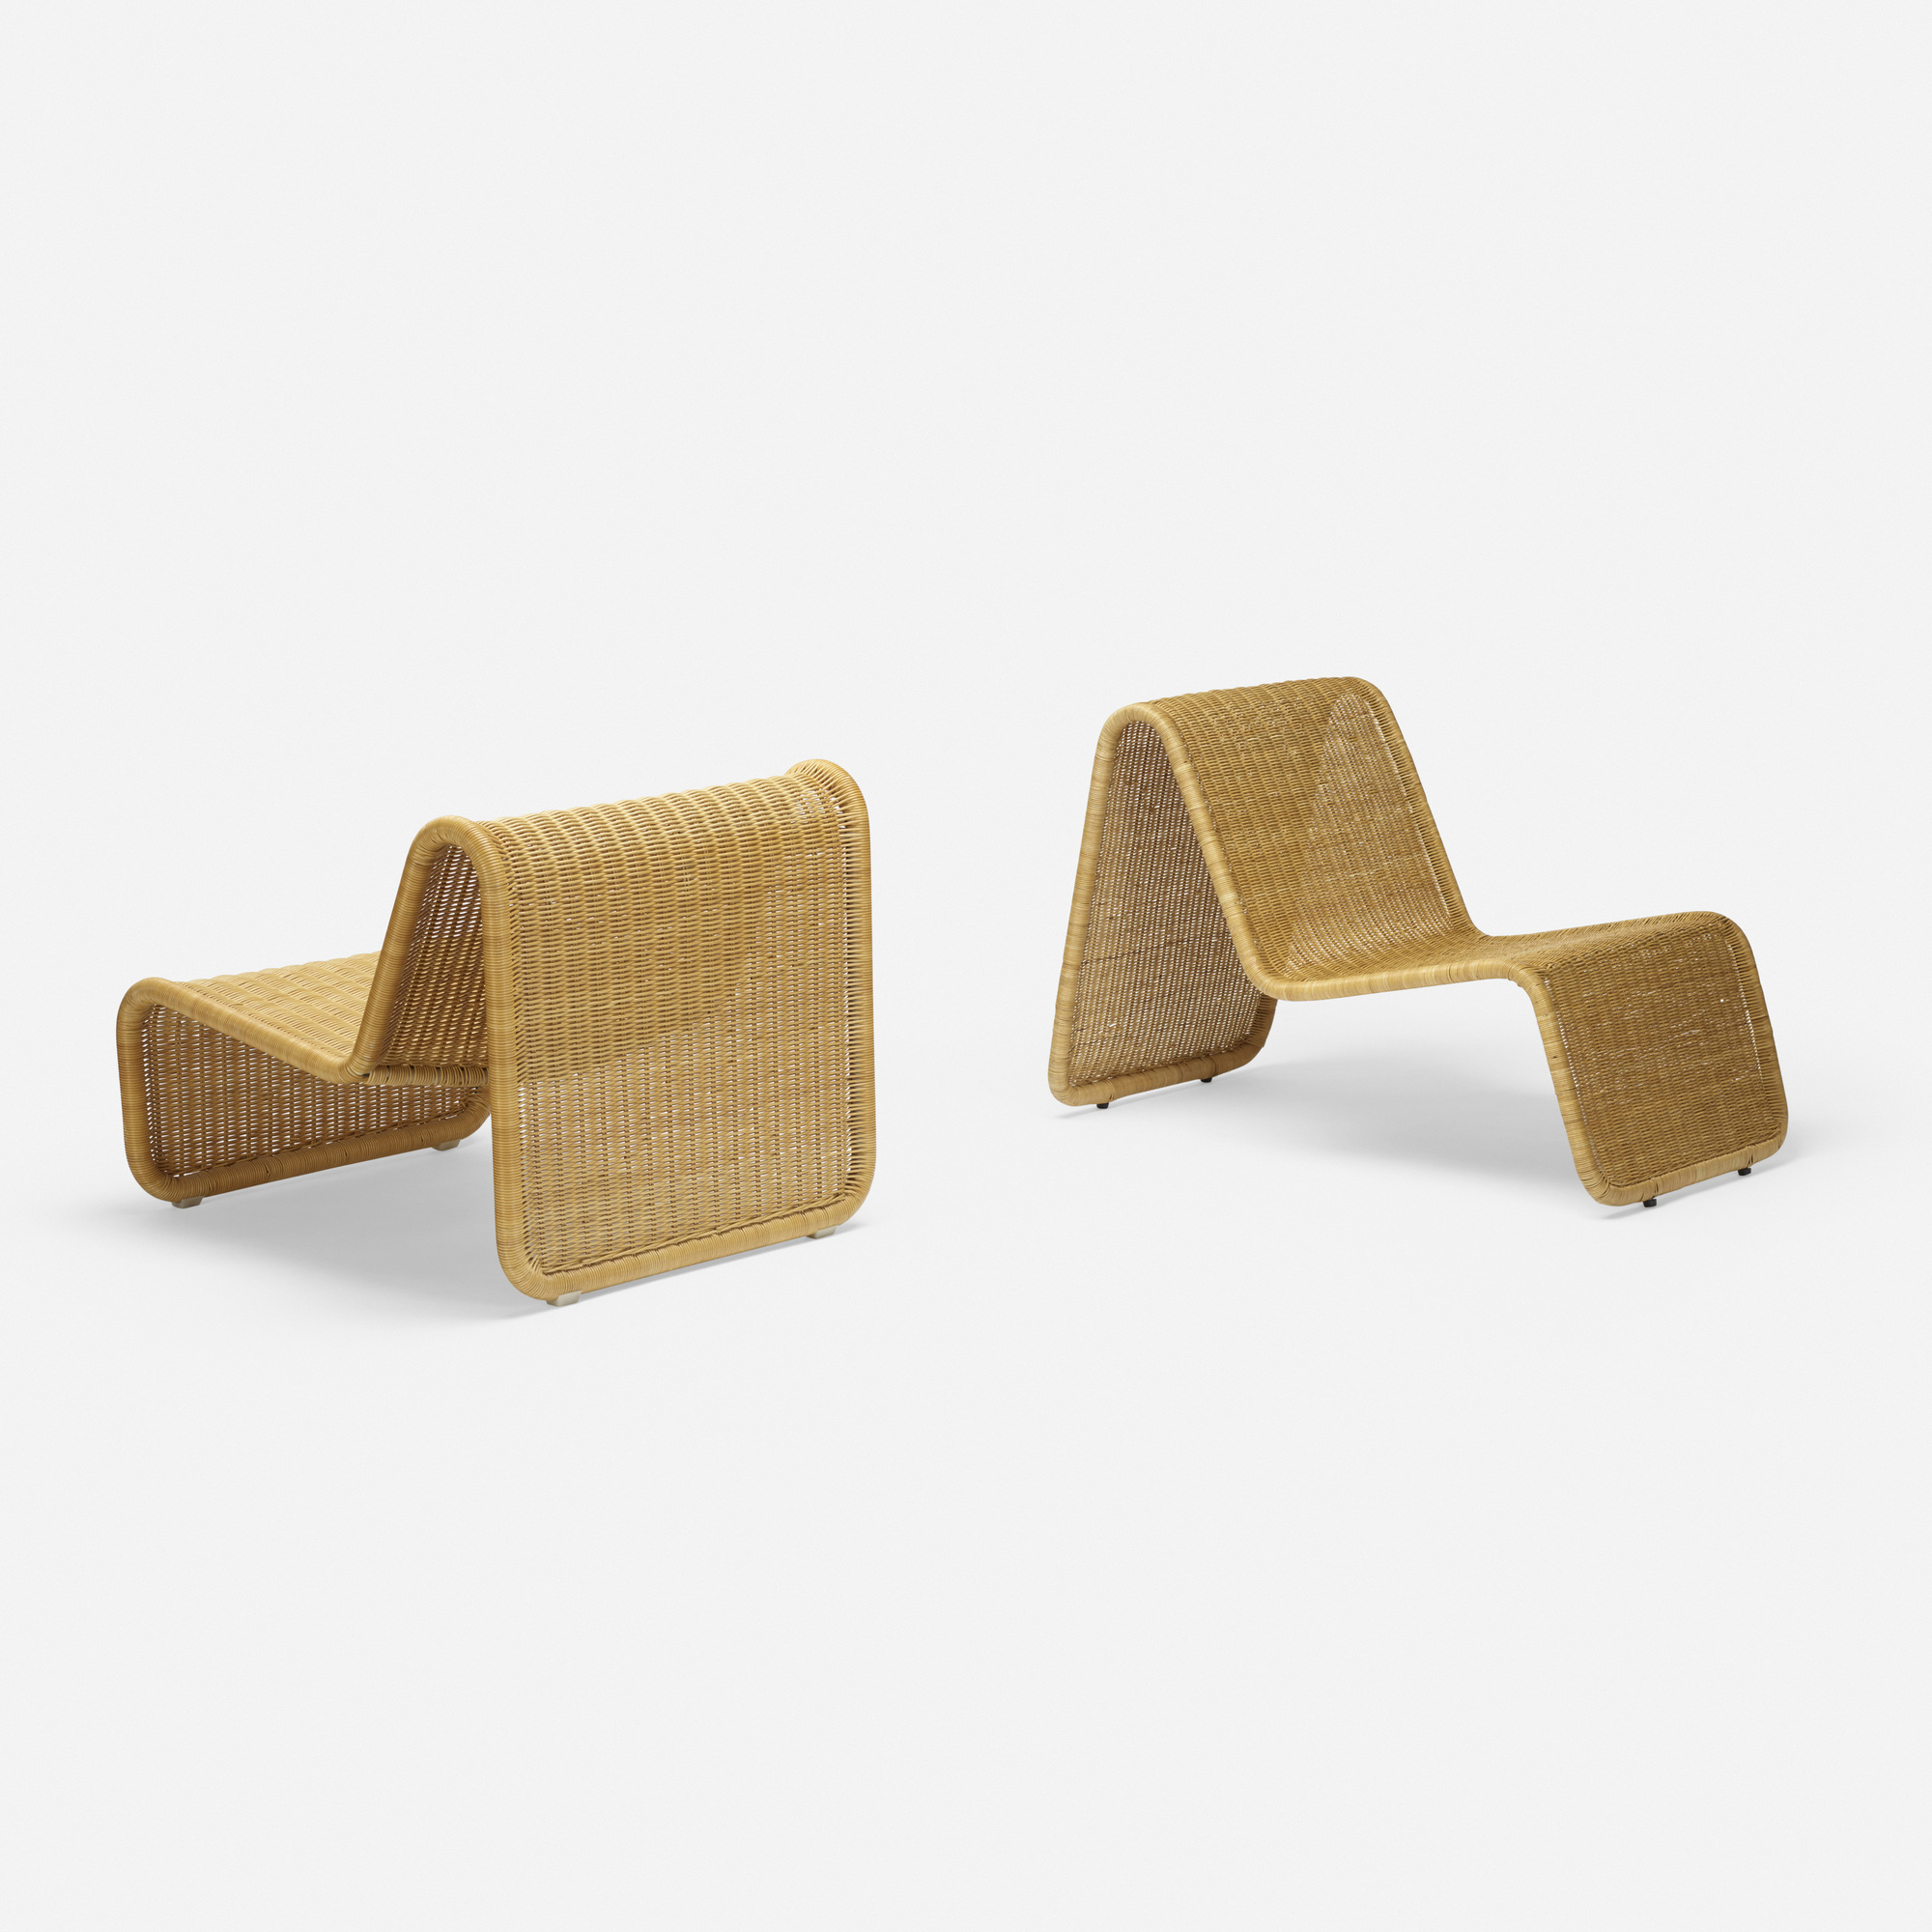 125: Tito Agnoli / P3 lounge chairs, set of two (2 of 2)